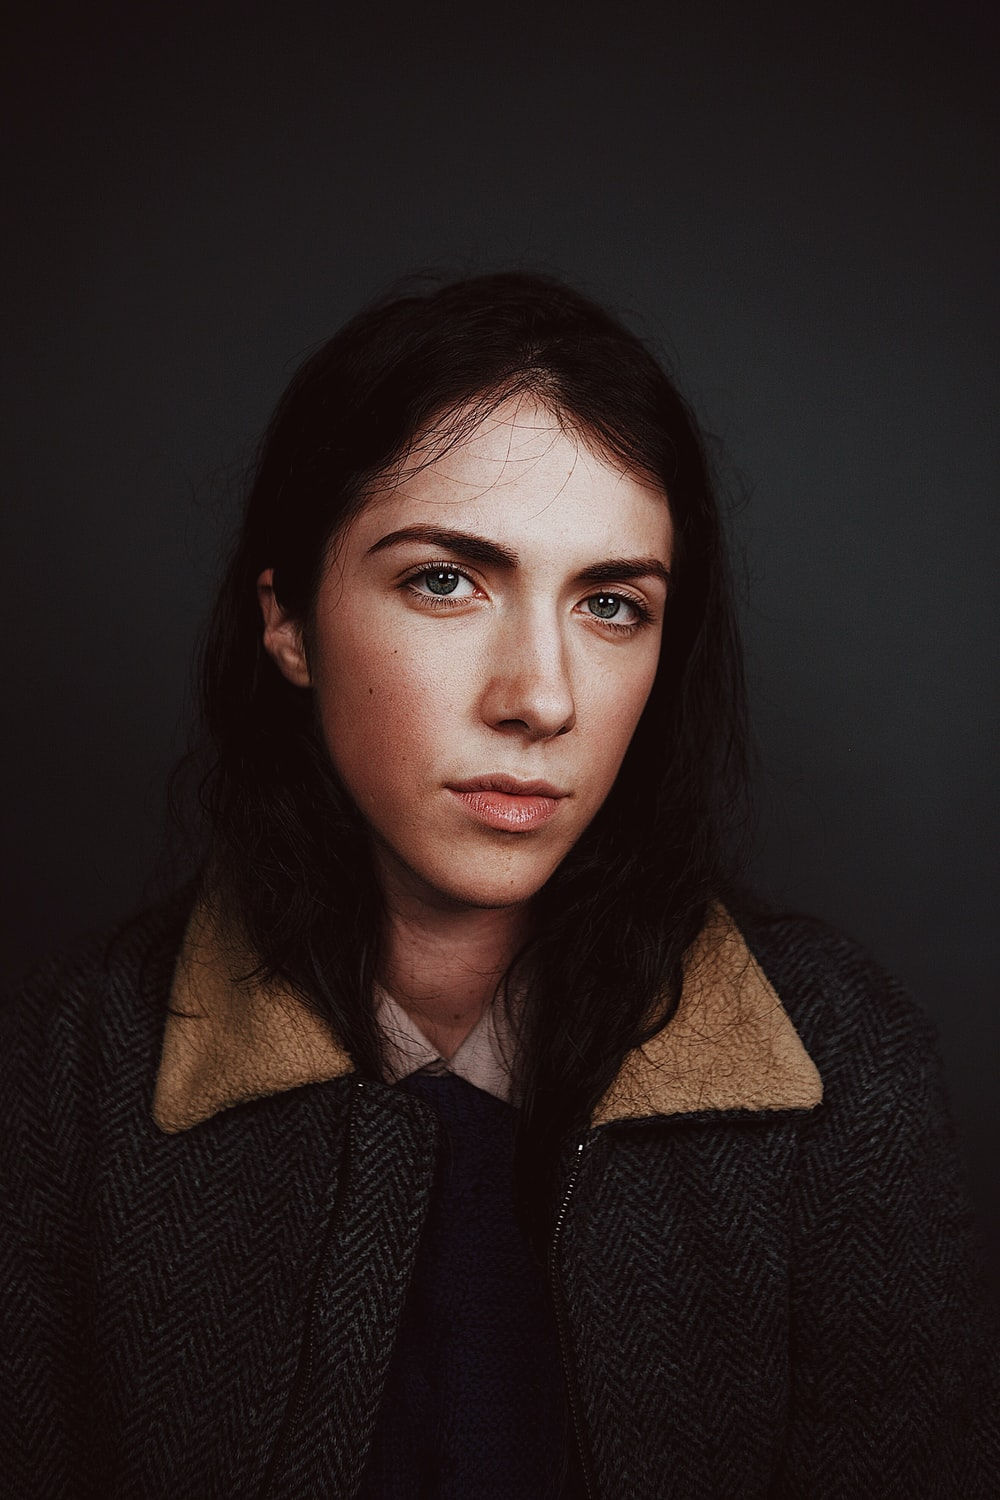 portrait photograph of woman in gray and brown coat